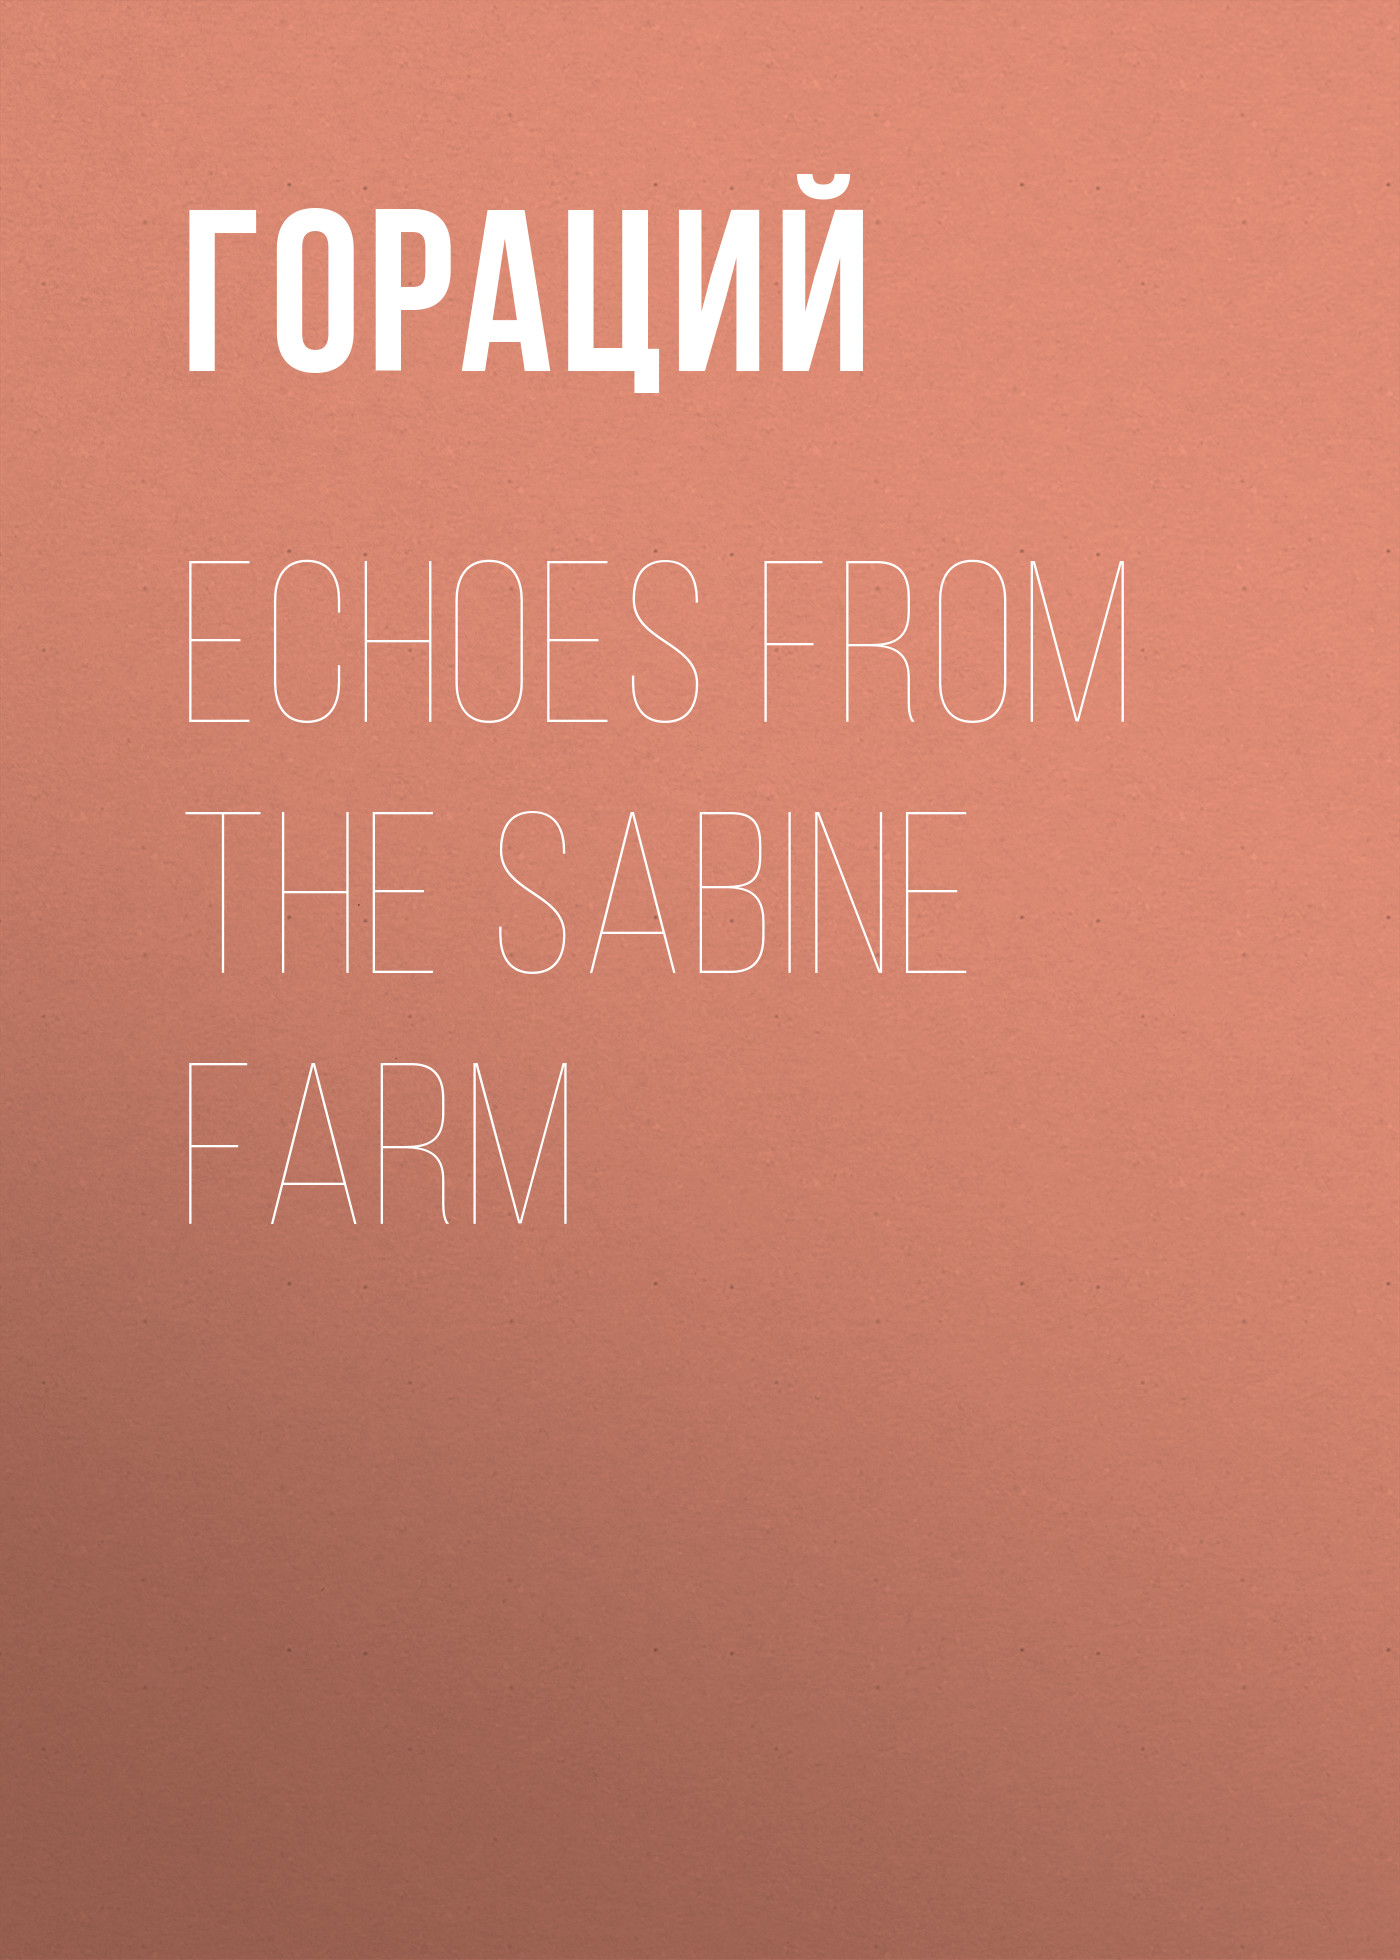 Гораций Echoes from the Sabine Farm цена